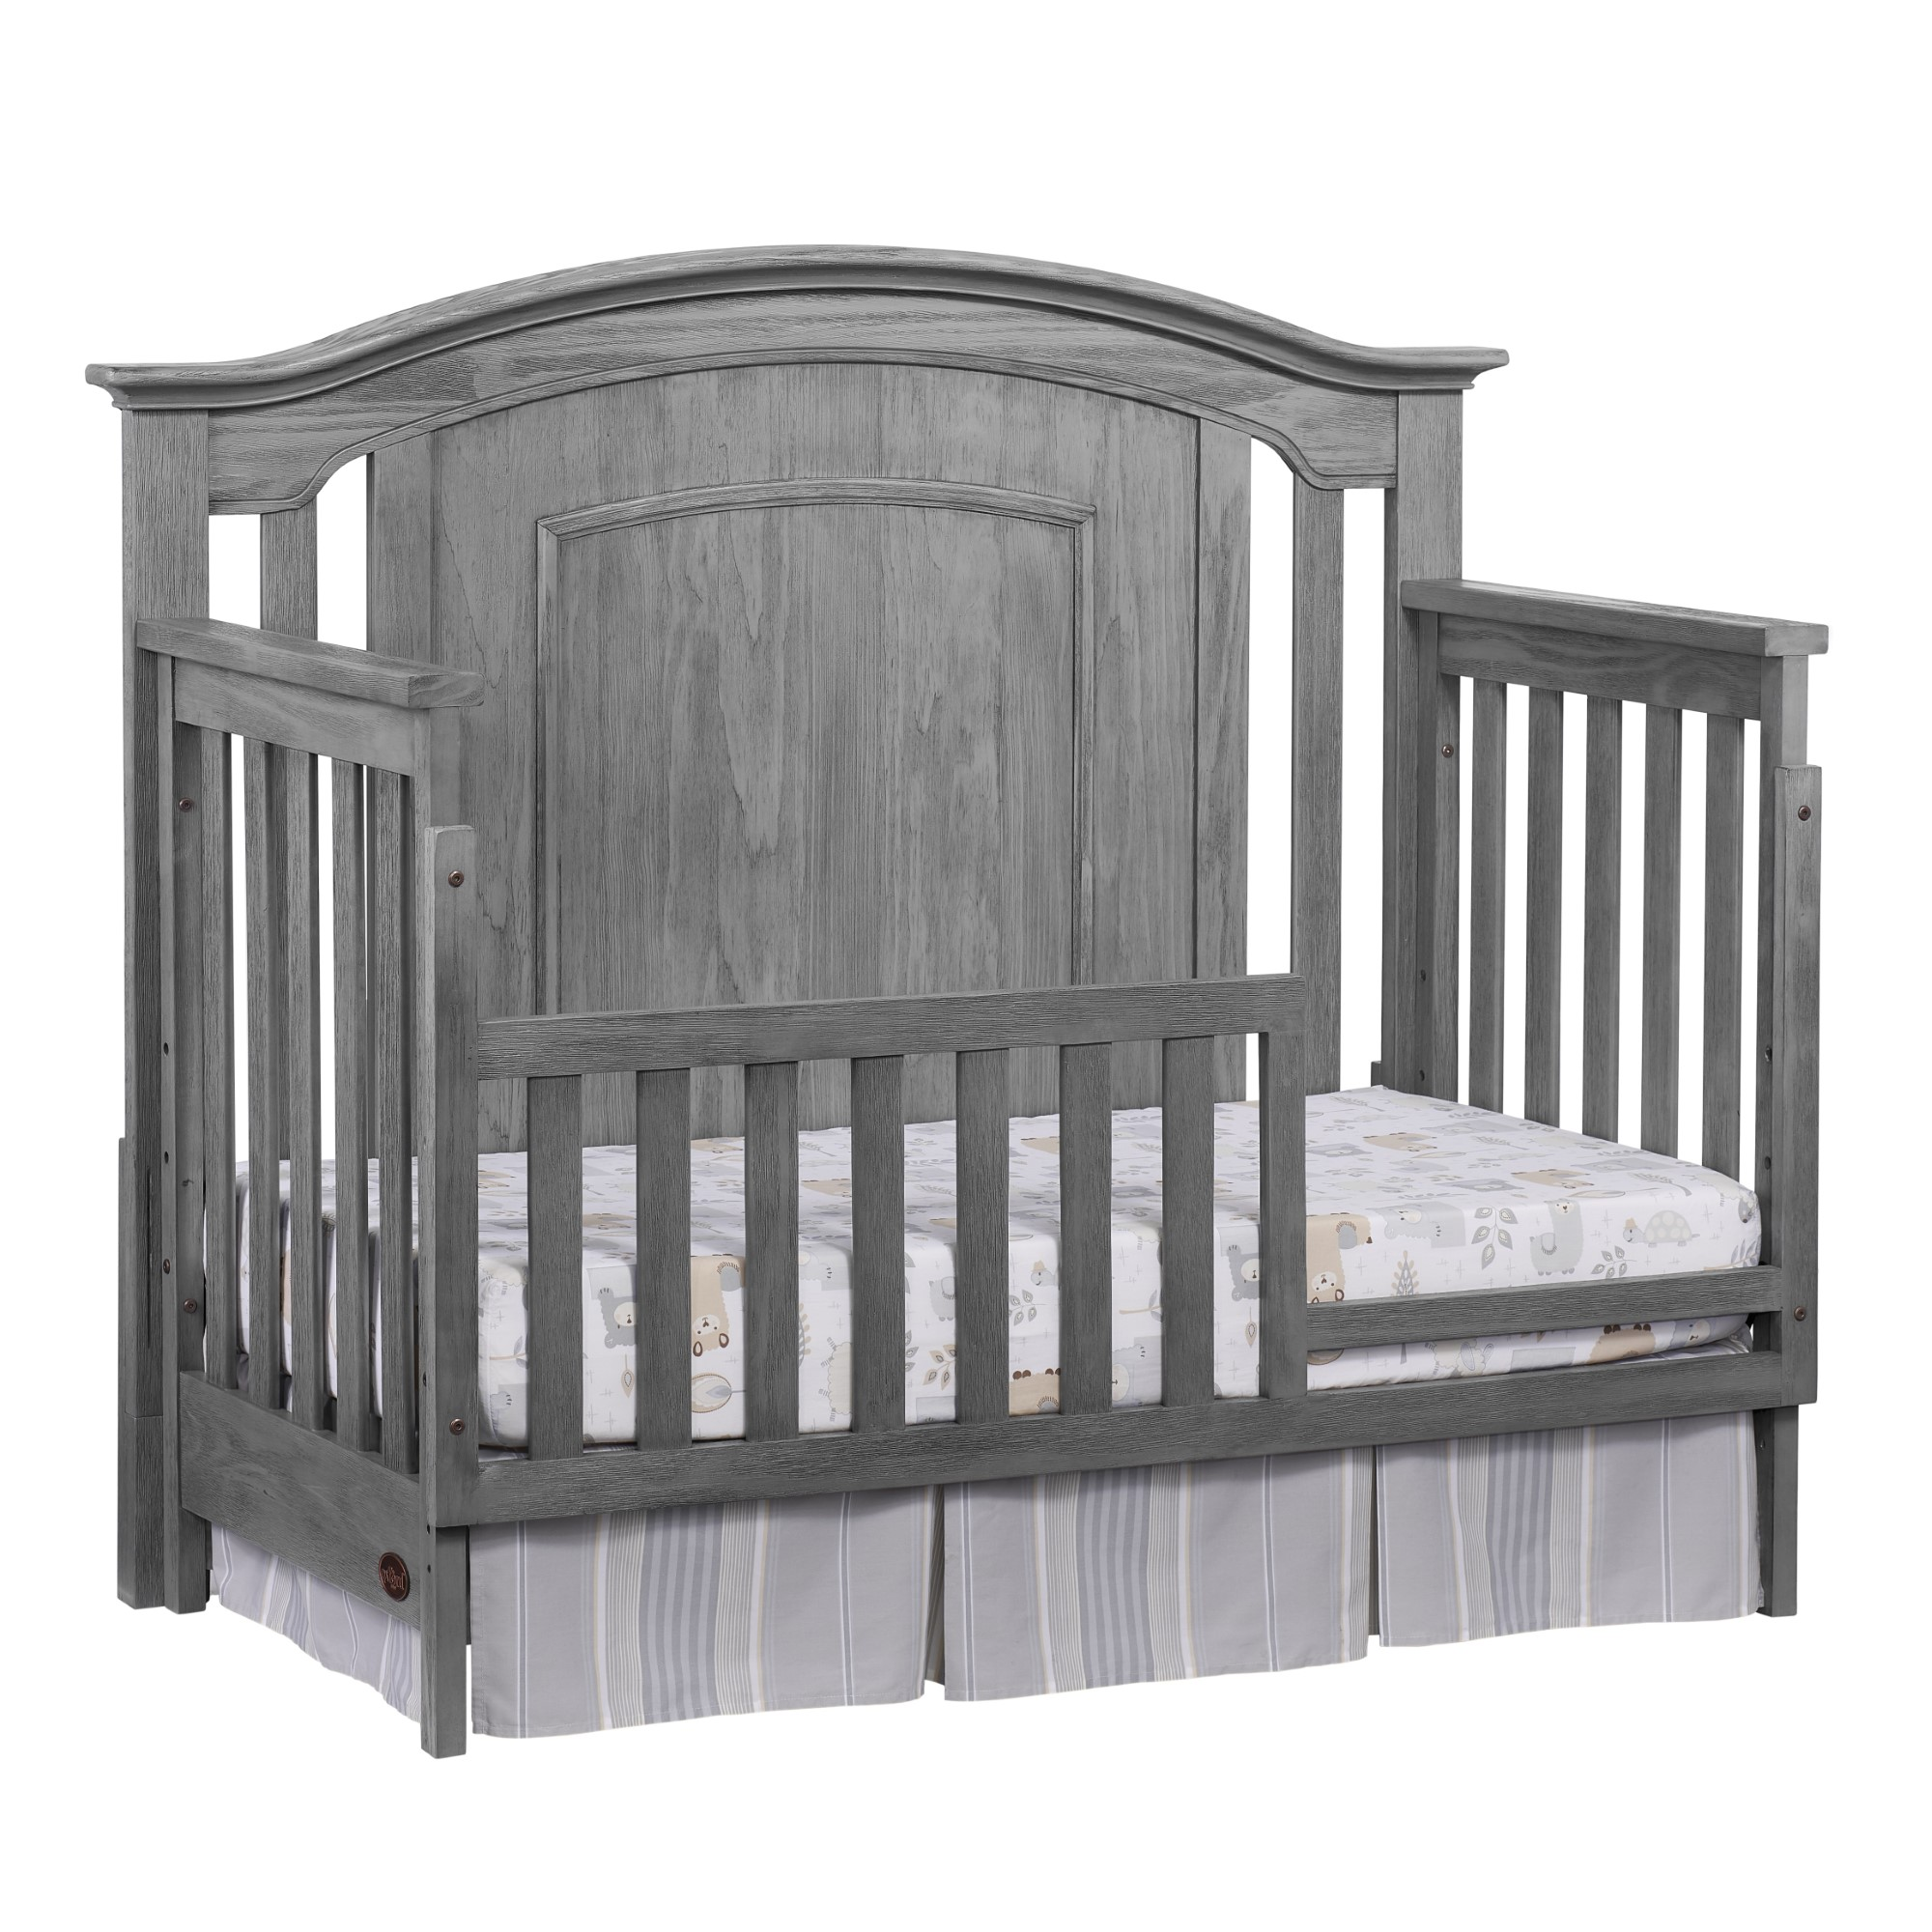 Guard Rail Willowbrook Graphite Gray Oxford Baby Amp Kids